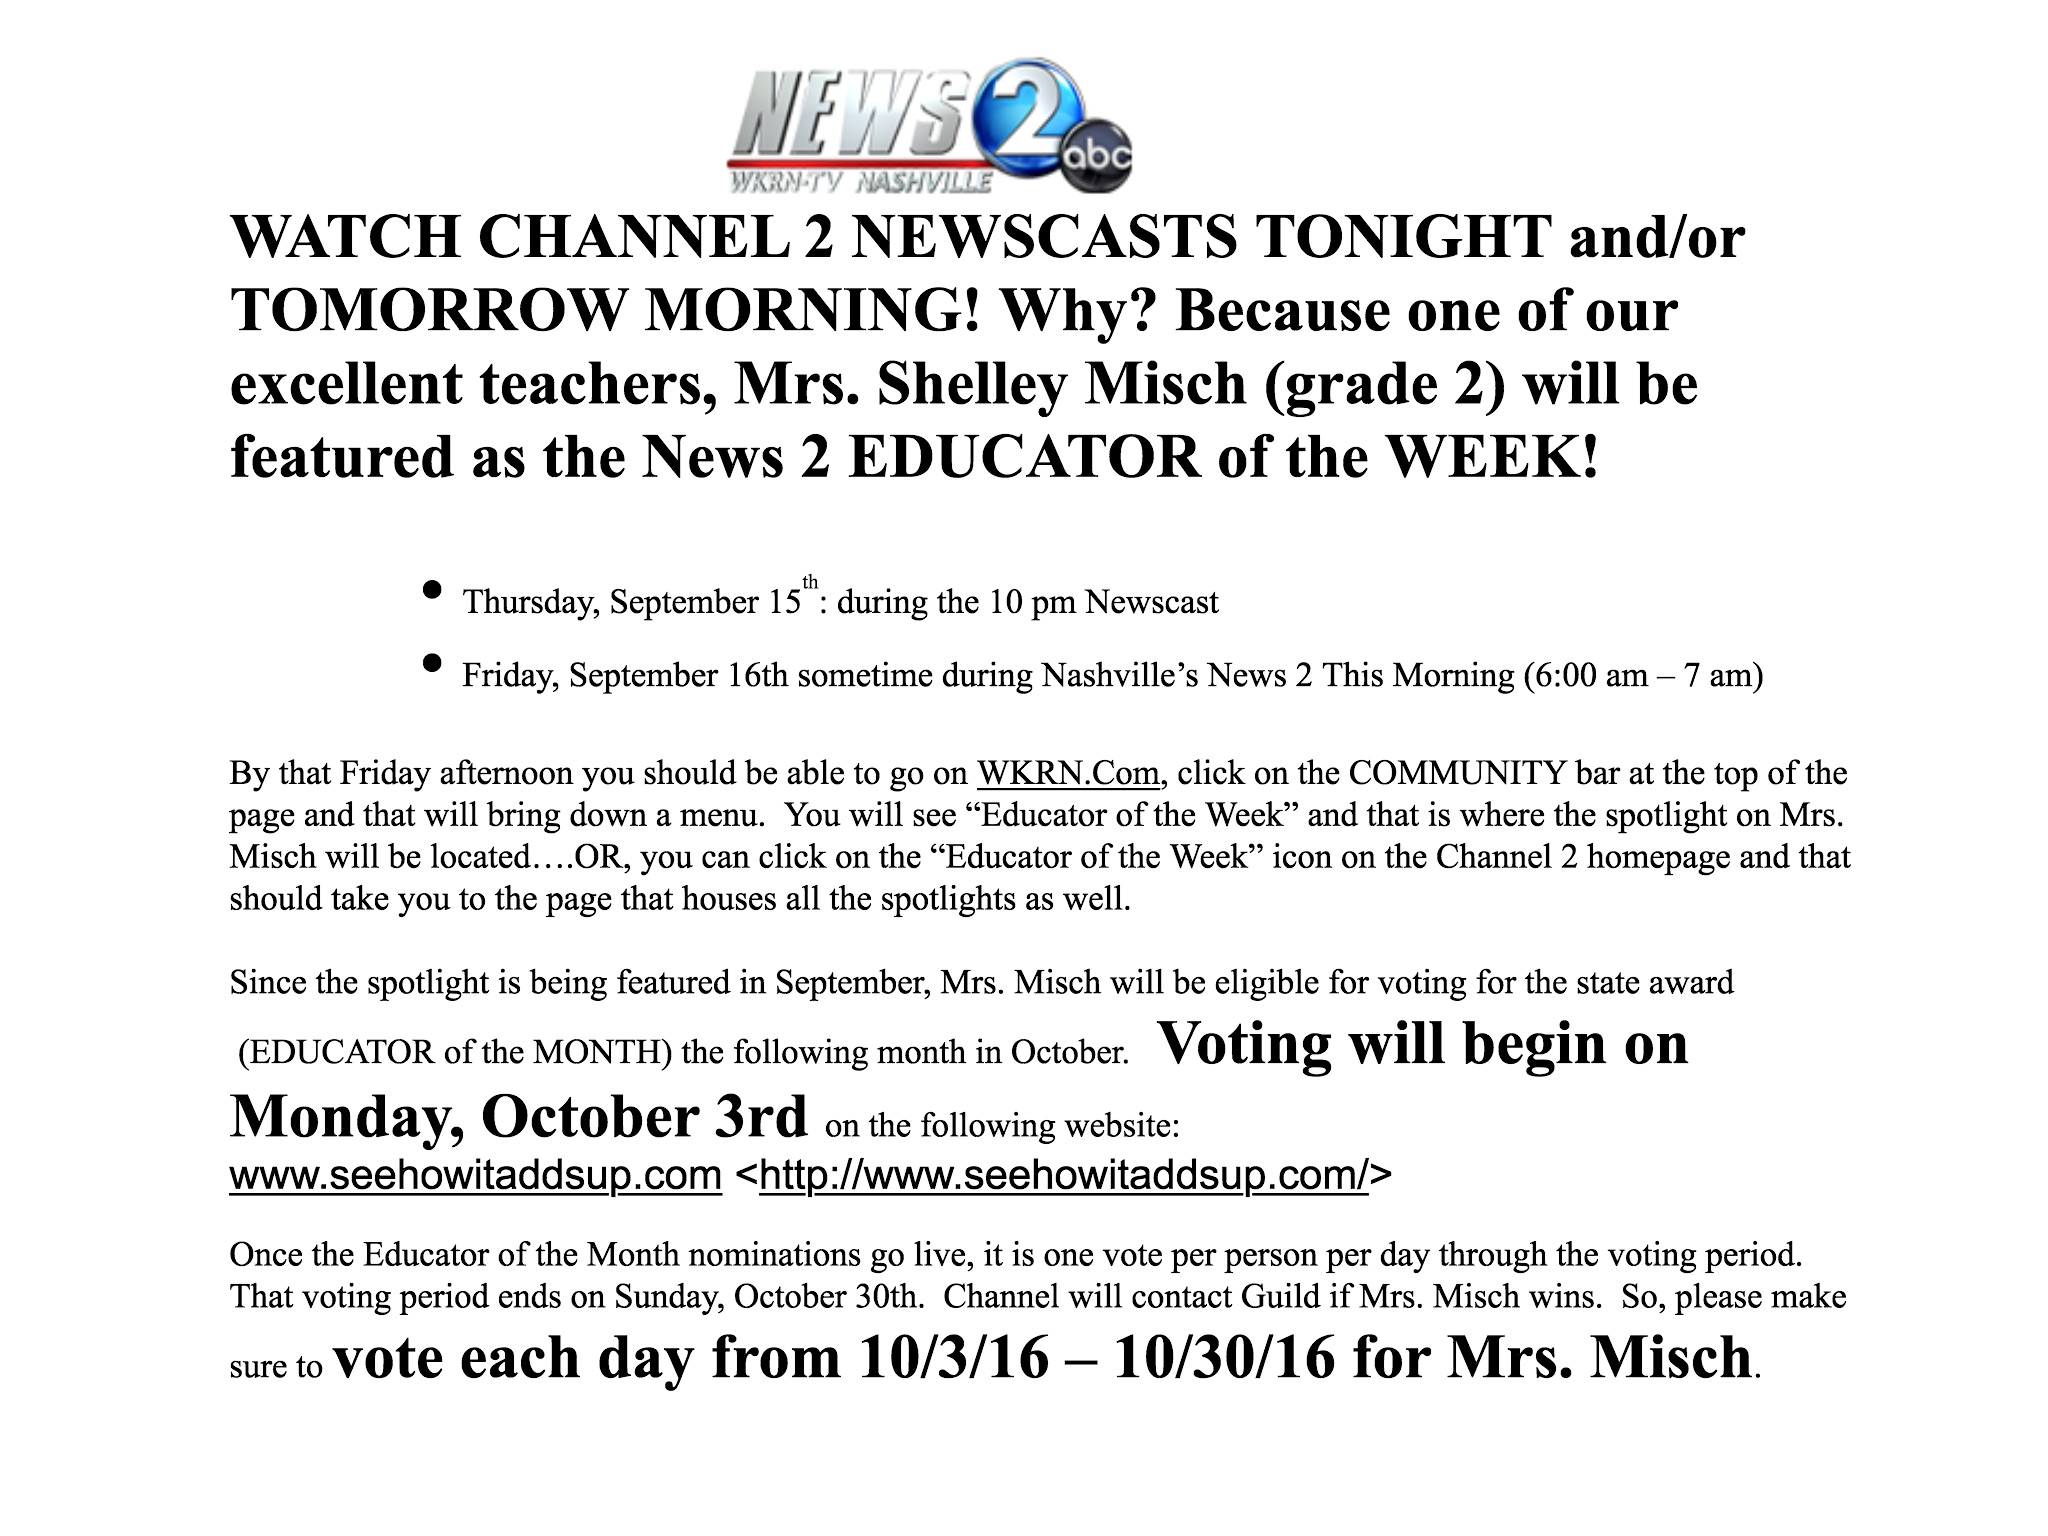 Click here to vote each day from 10/3/16 – 10/30/16